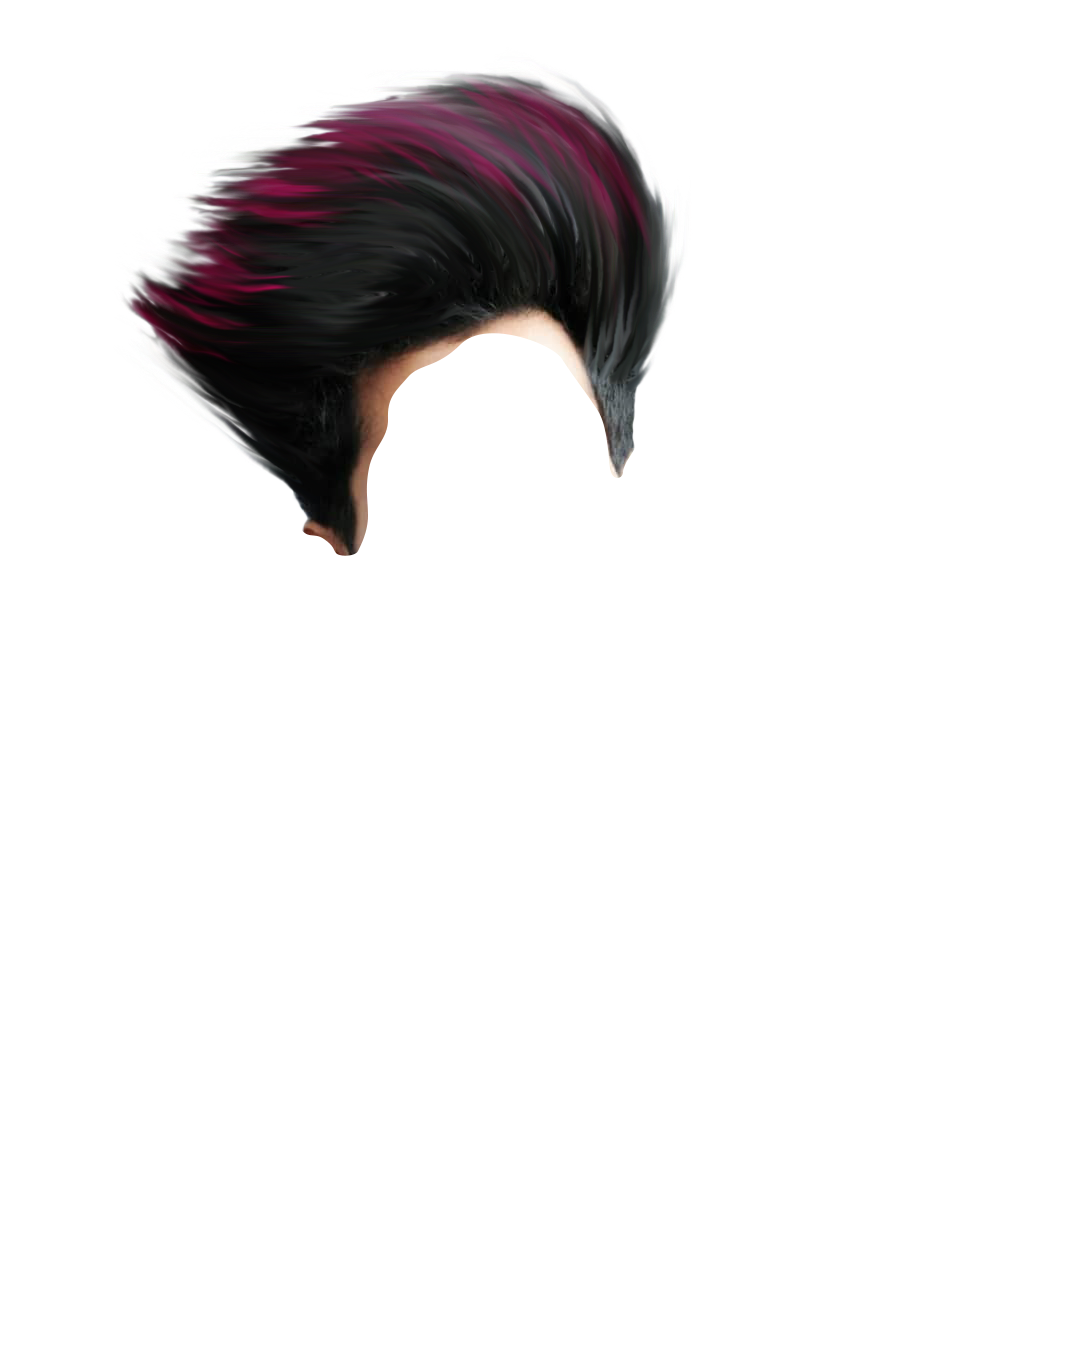 Png background hd. Full cb hair download